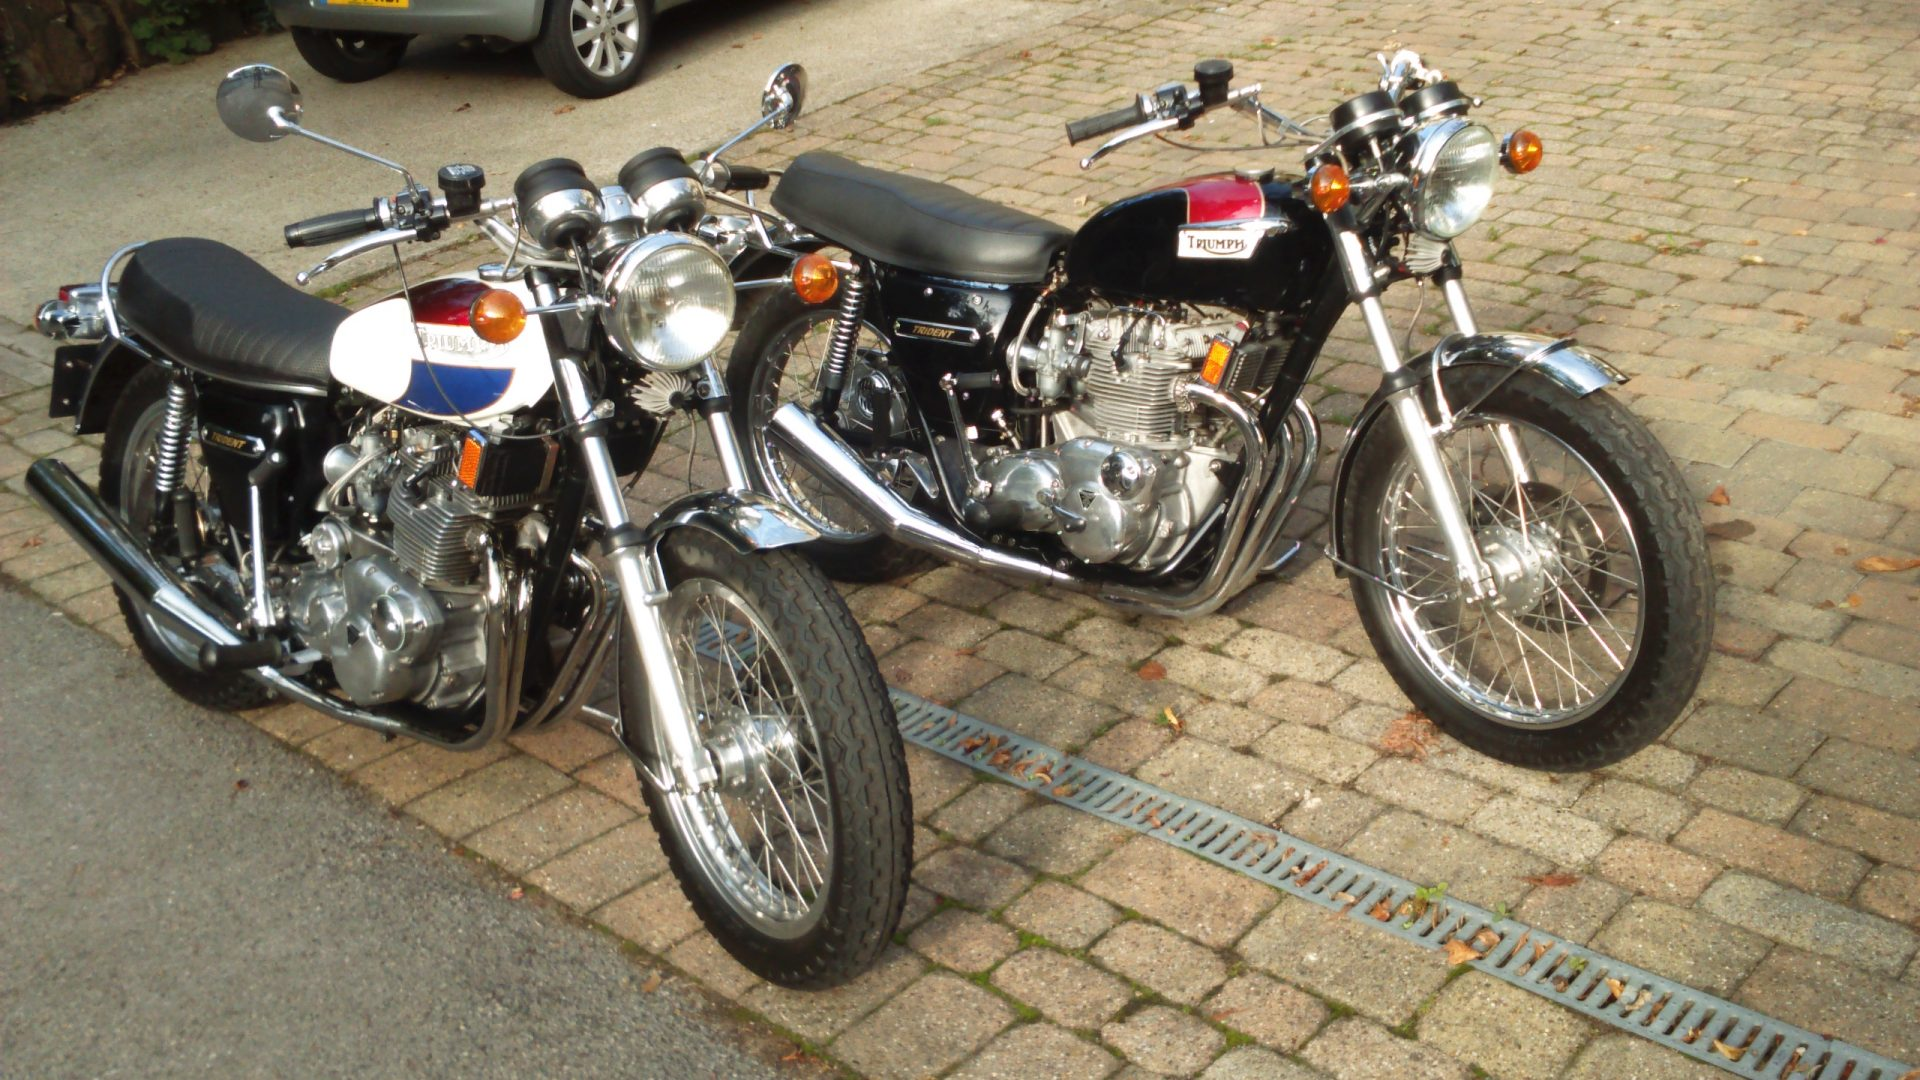 Triumph Trident-and-BSA Rocket III Buyer's Guide